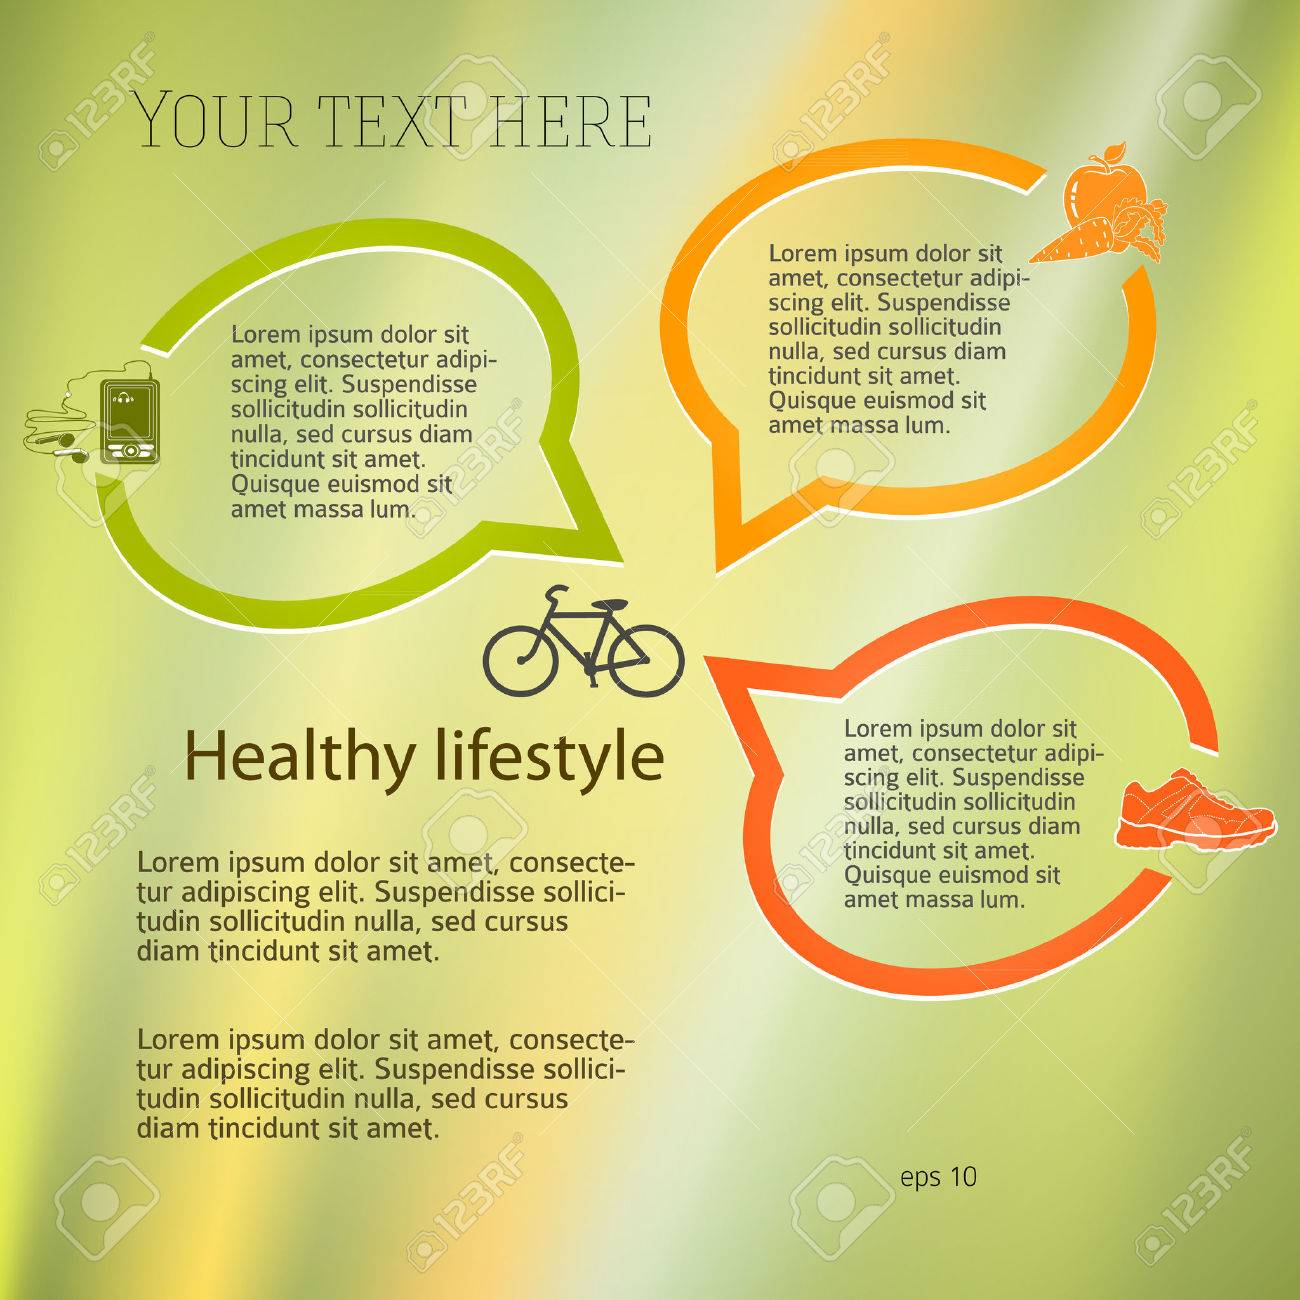 Healthy lifestyle & organic food icons  Modern infographic style